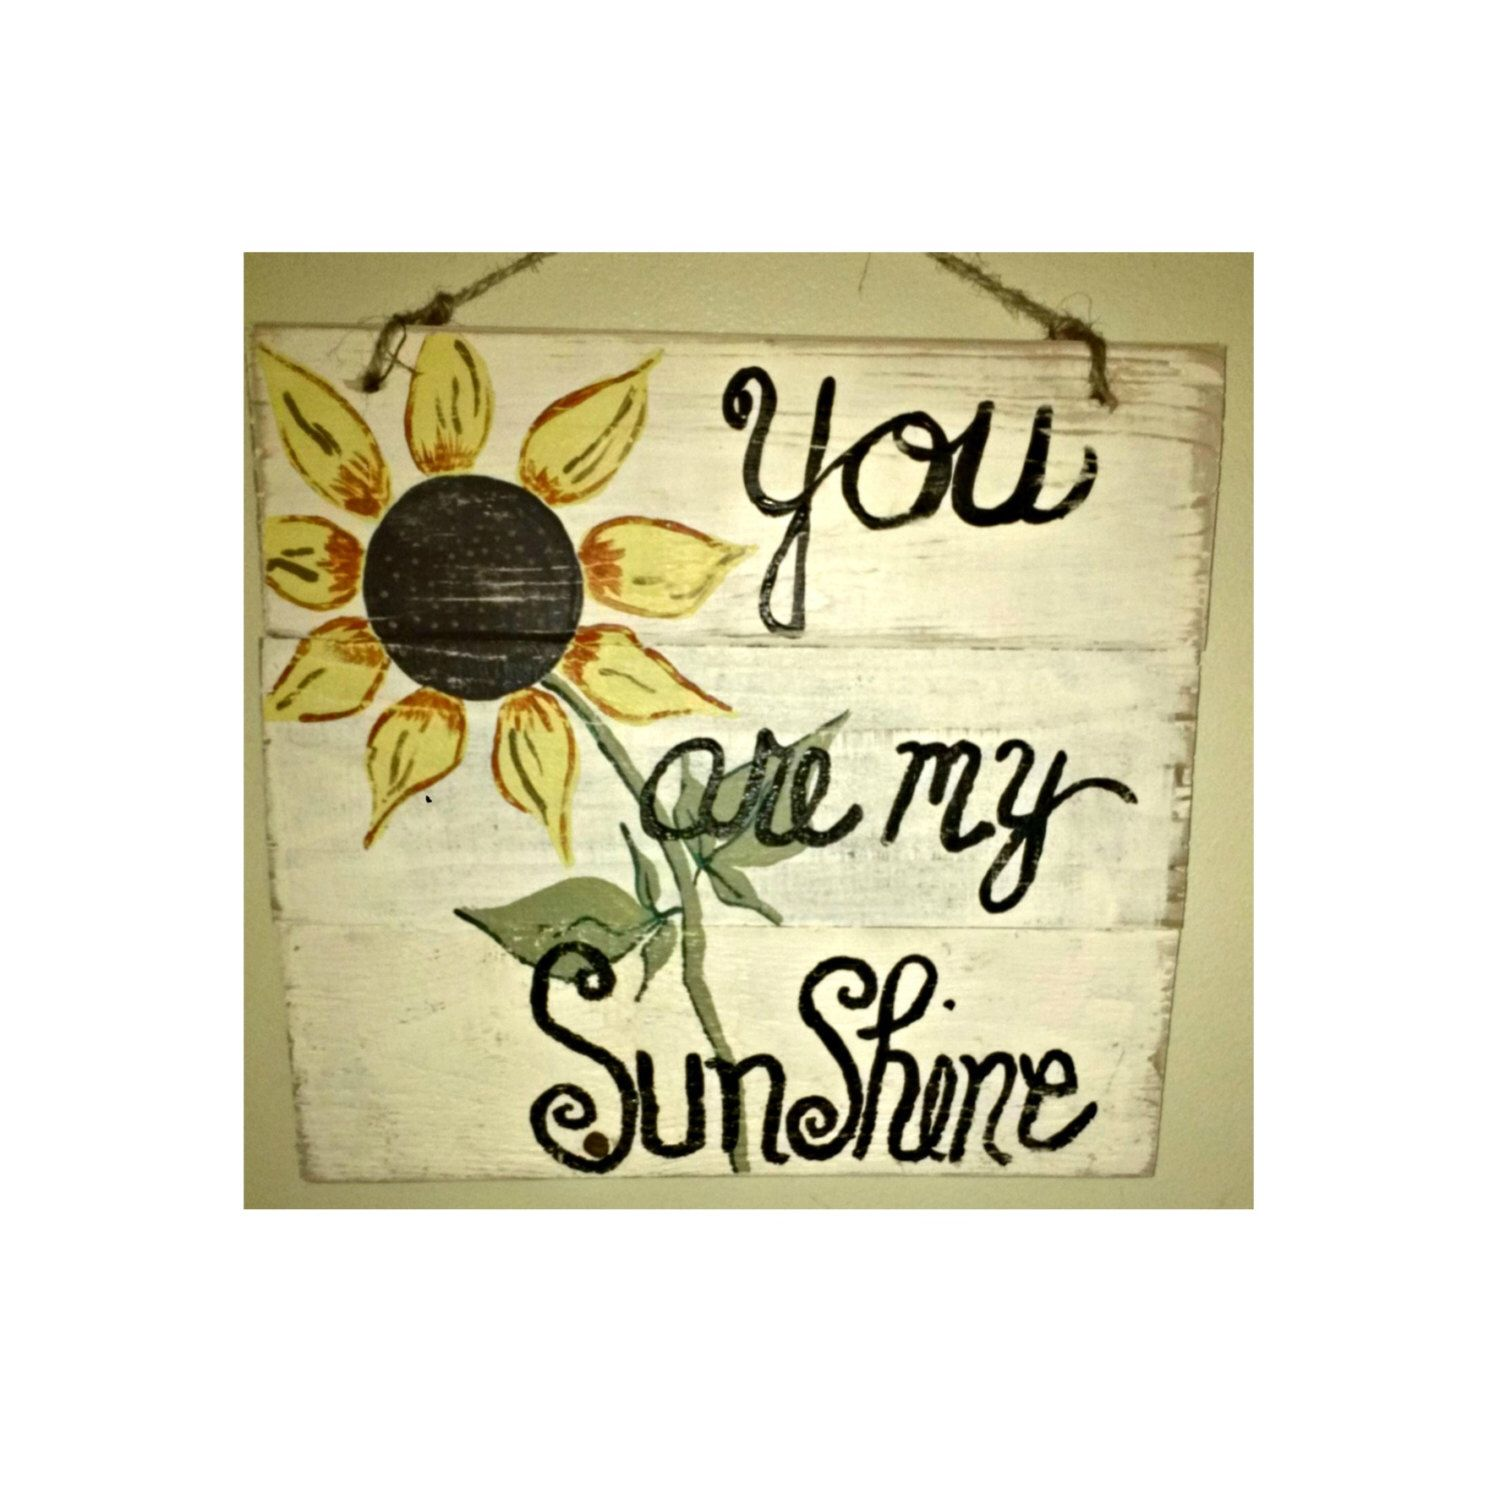 Handmade sunshine wood sign custom wood sunshine sign hand handmade wood sign custom wood sunshine sign personalize sign hand painted sign wood sign under 20 gift for women gift for baby negle Image collections